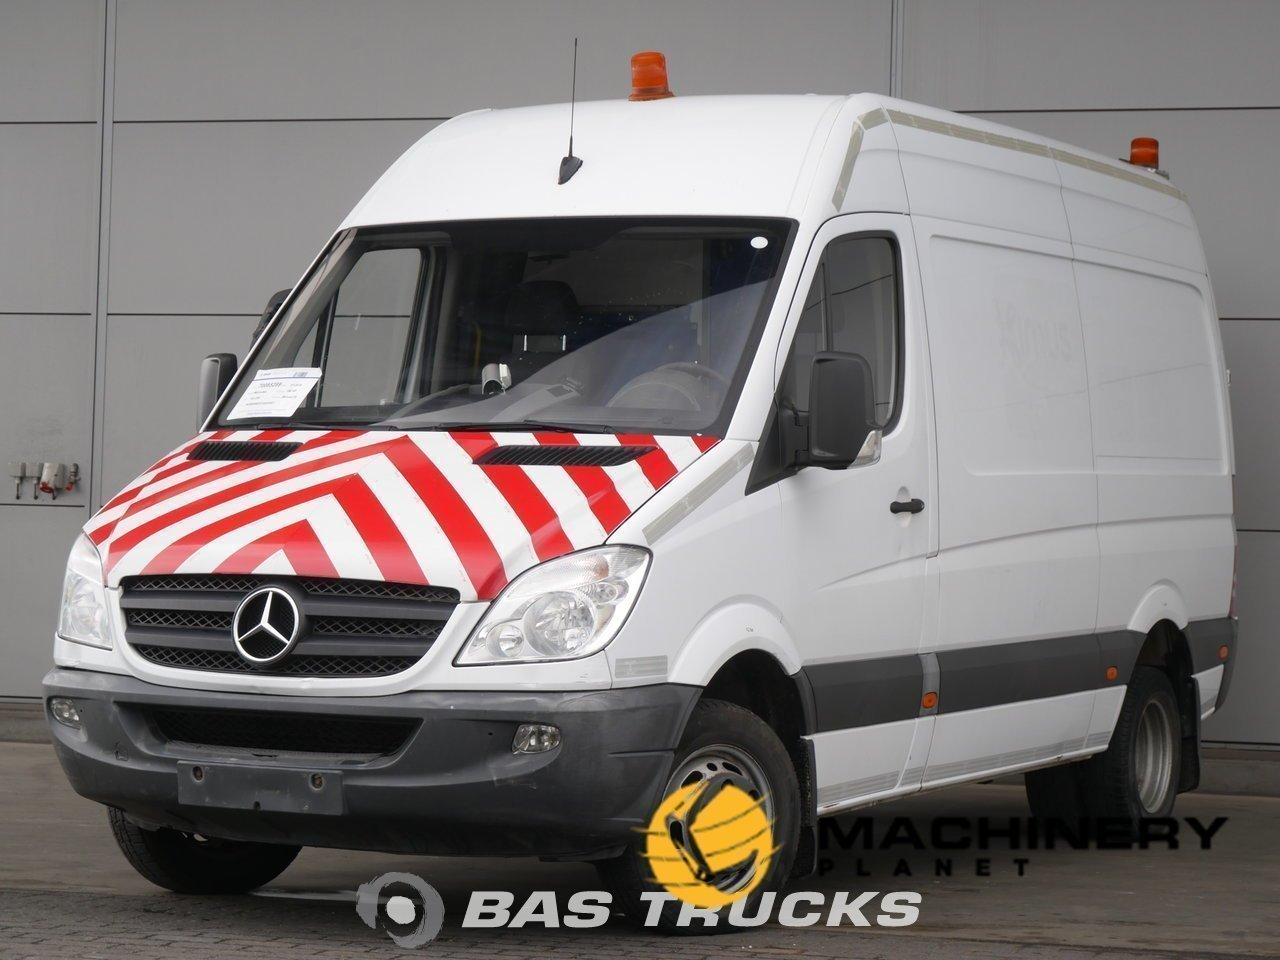 Used-Light-commercial-vehicle-Mercedes-Sprinter-2010_128528_1-1554199447391_5ca333975f90d-1.jpg